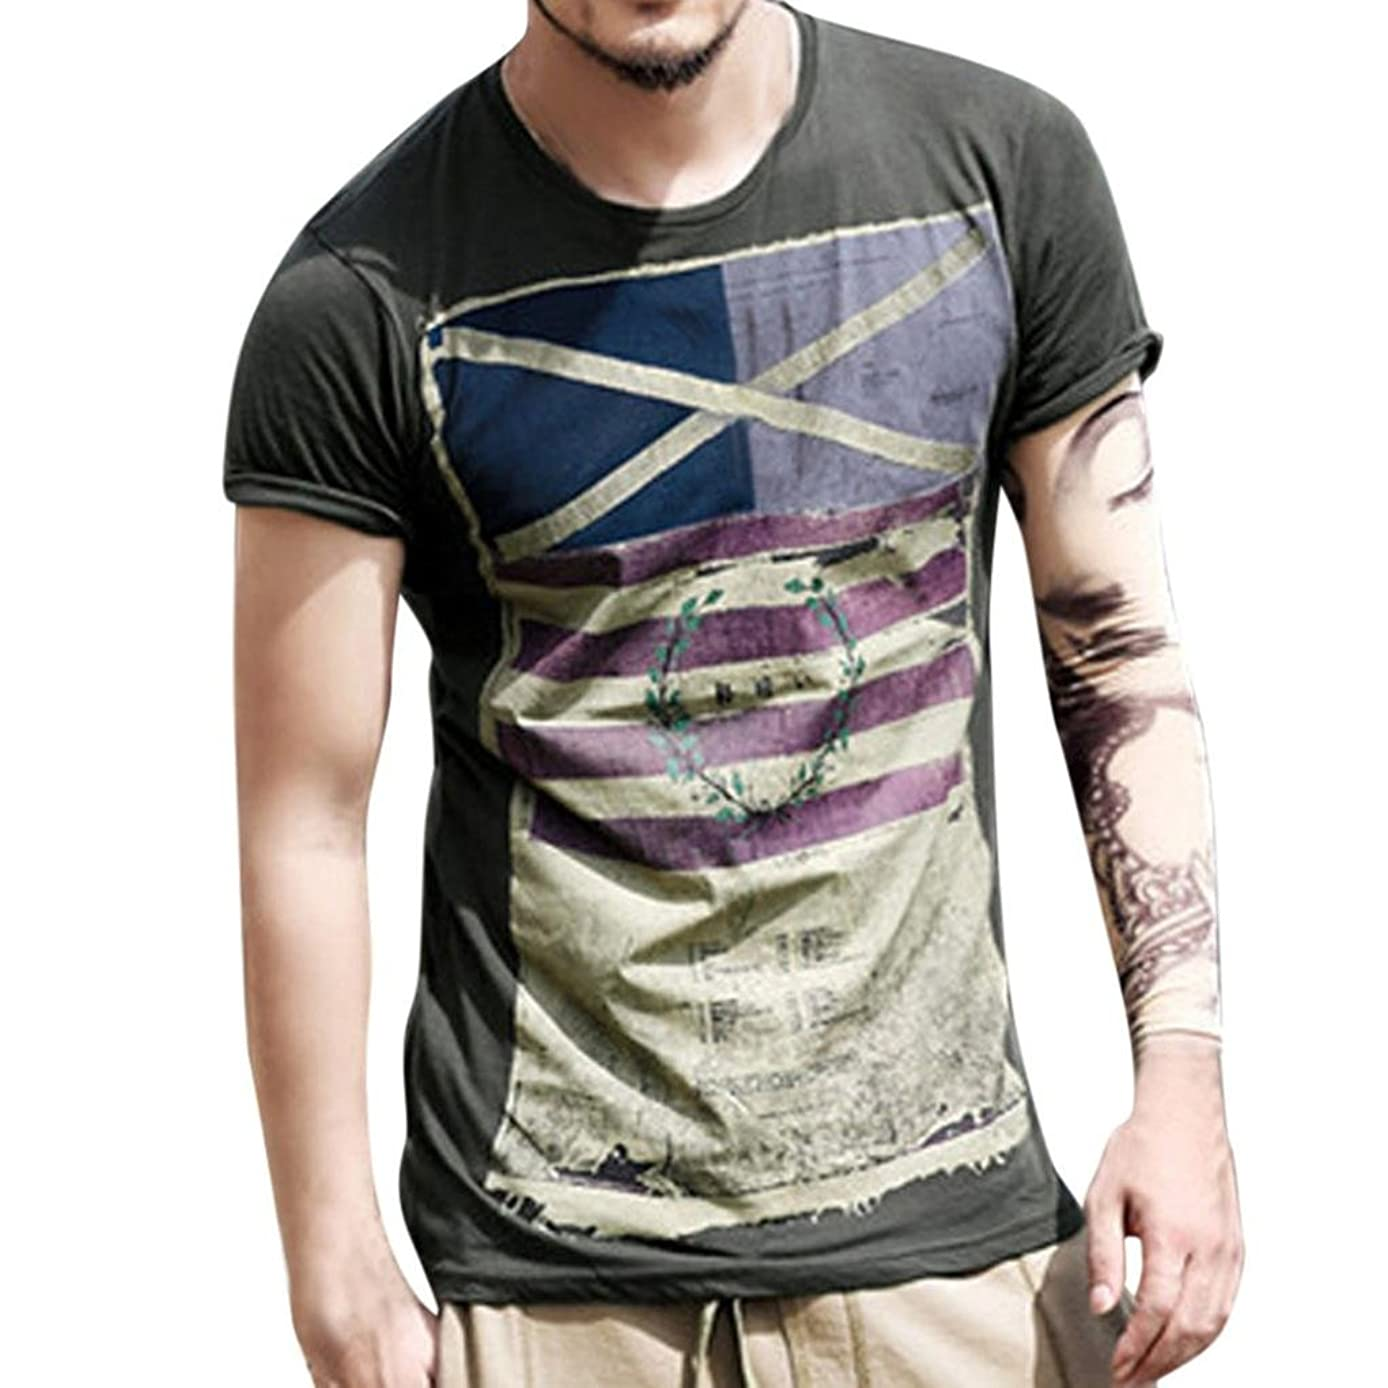 Litetao Clearance Men Top Personality Flag Slim Short Sleeve T-Shirt Blouse 4th of July USA